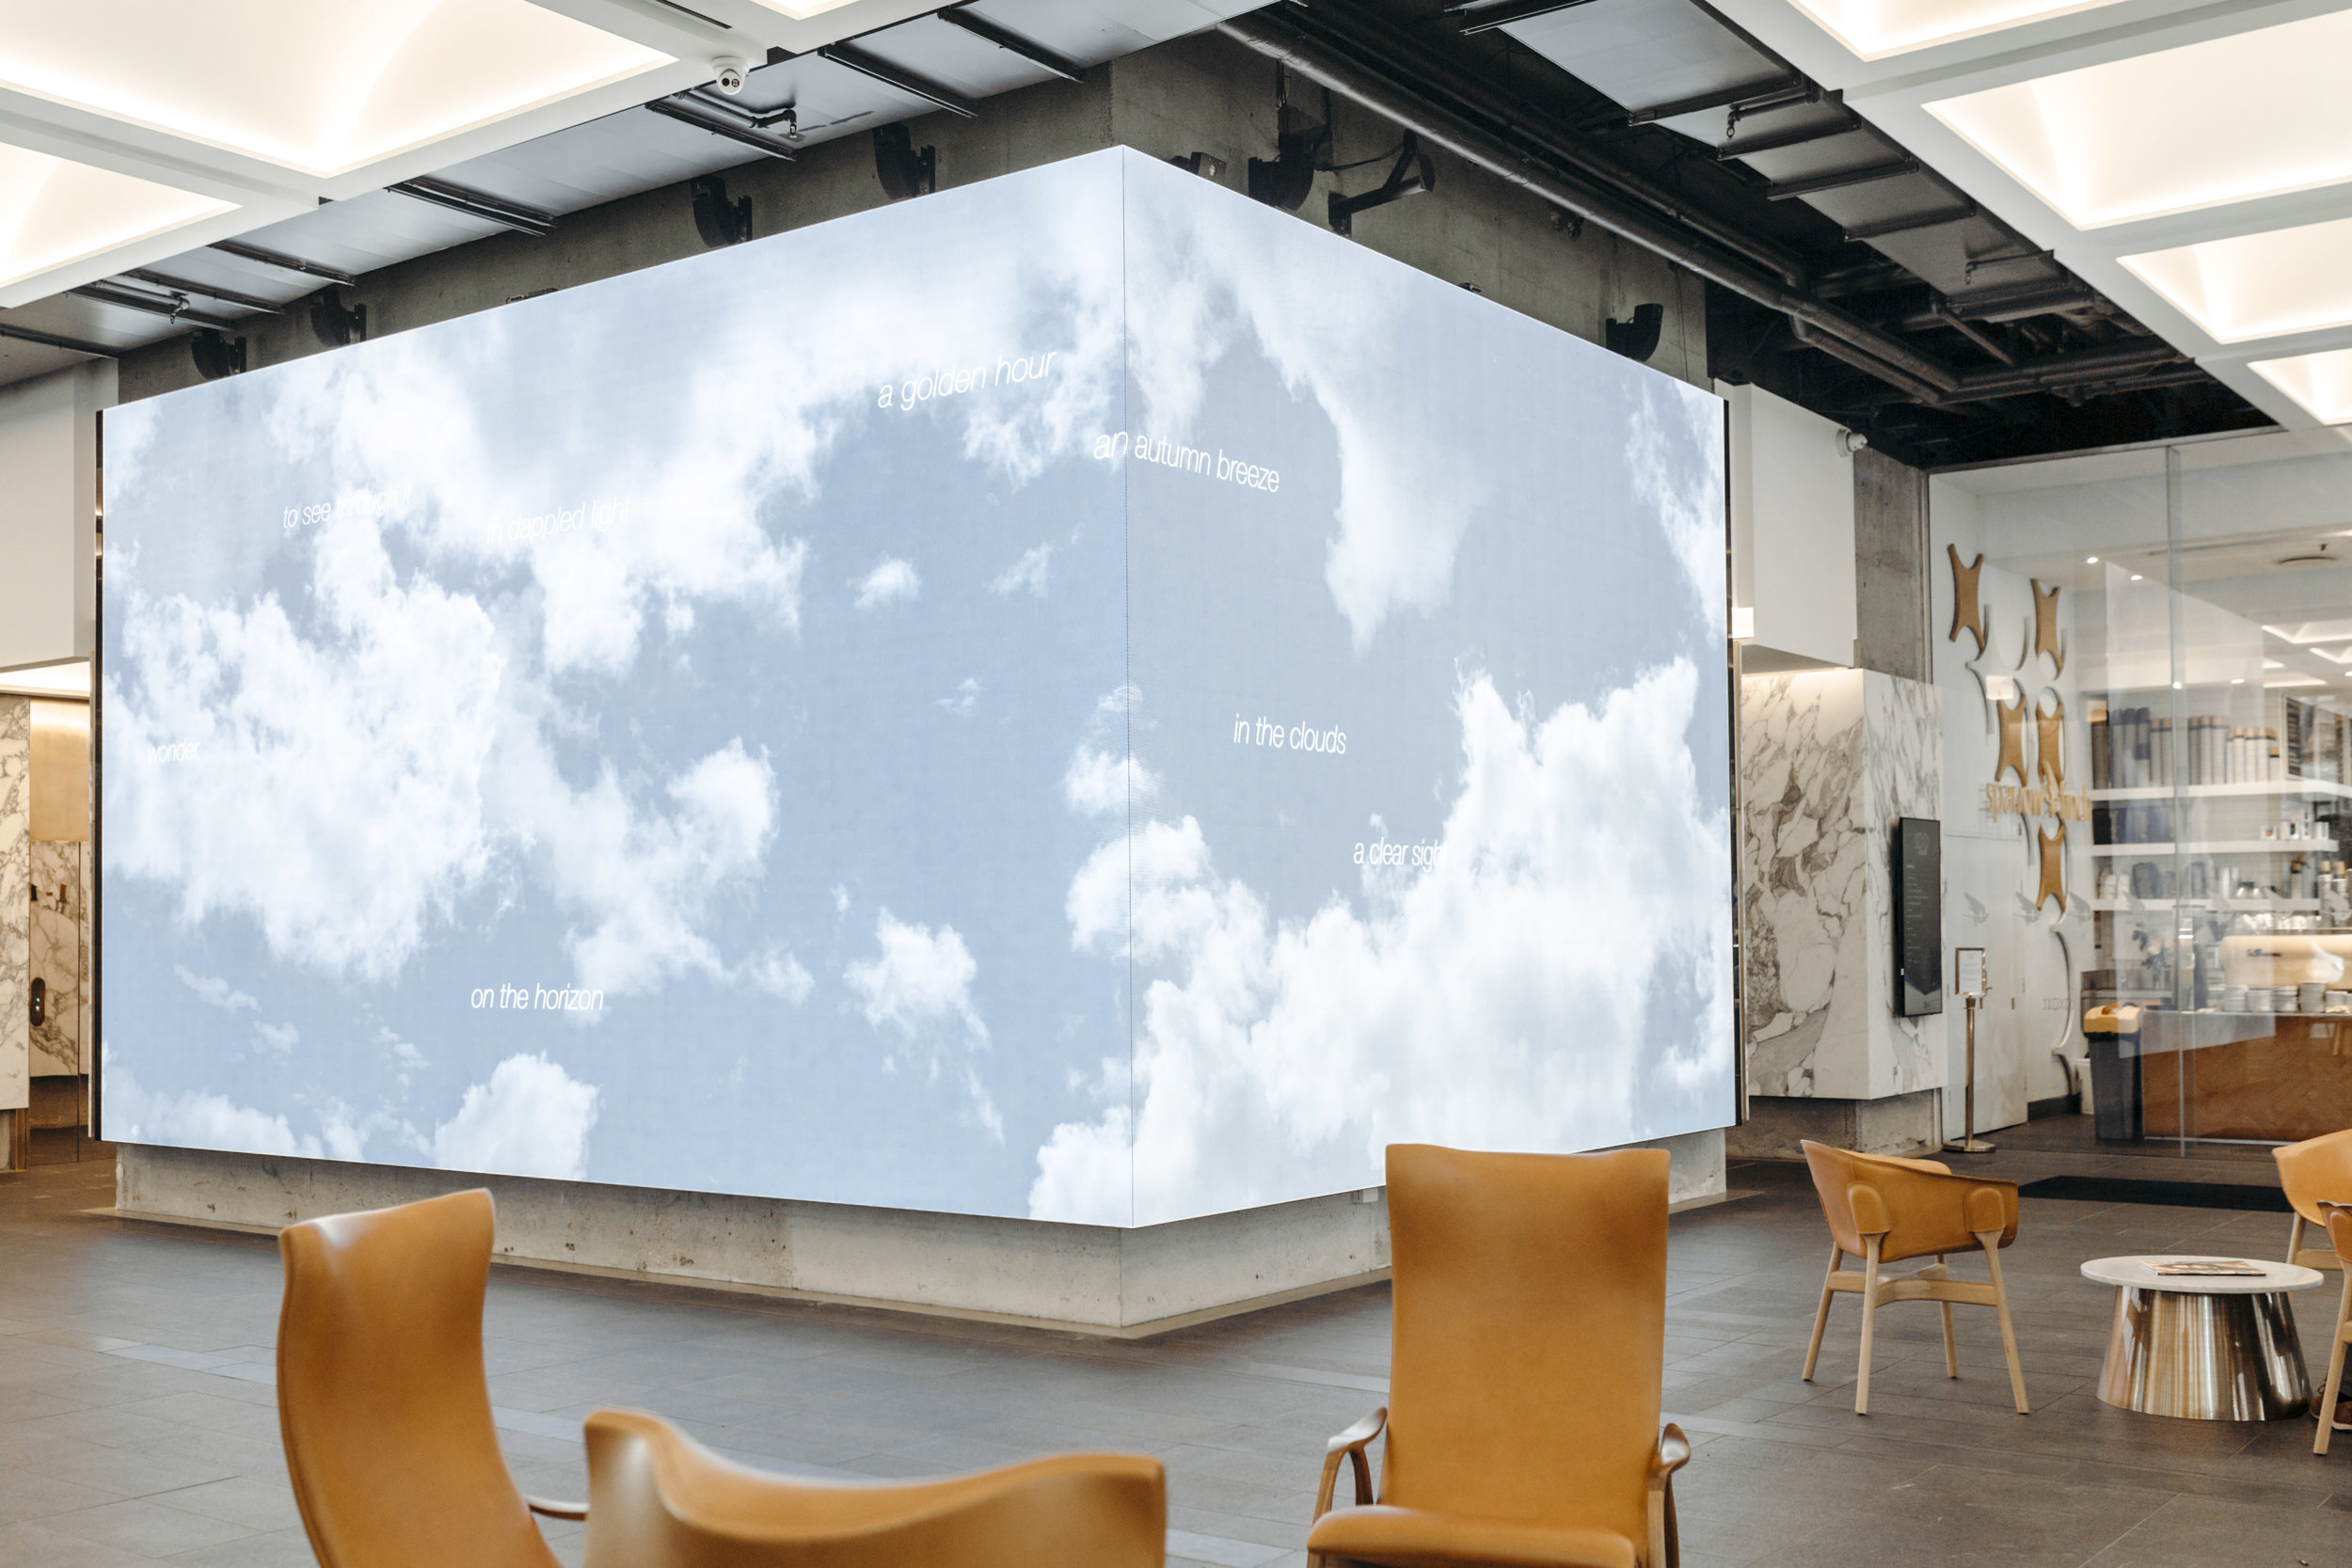 Annie Macindoe's video installation for 100 Creek Street. Image Credit: Art Pharmacy Consulting / Anwyn Howarth.